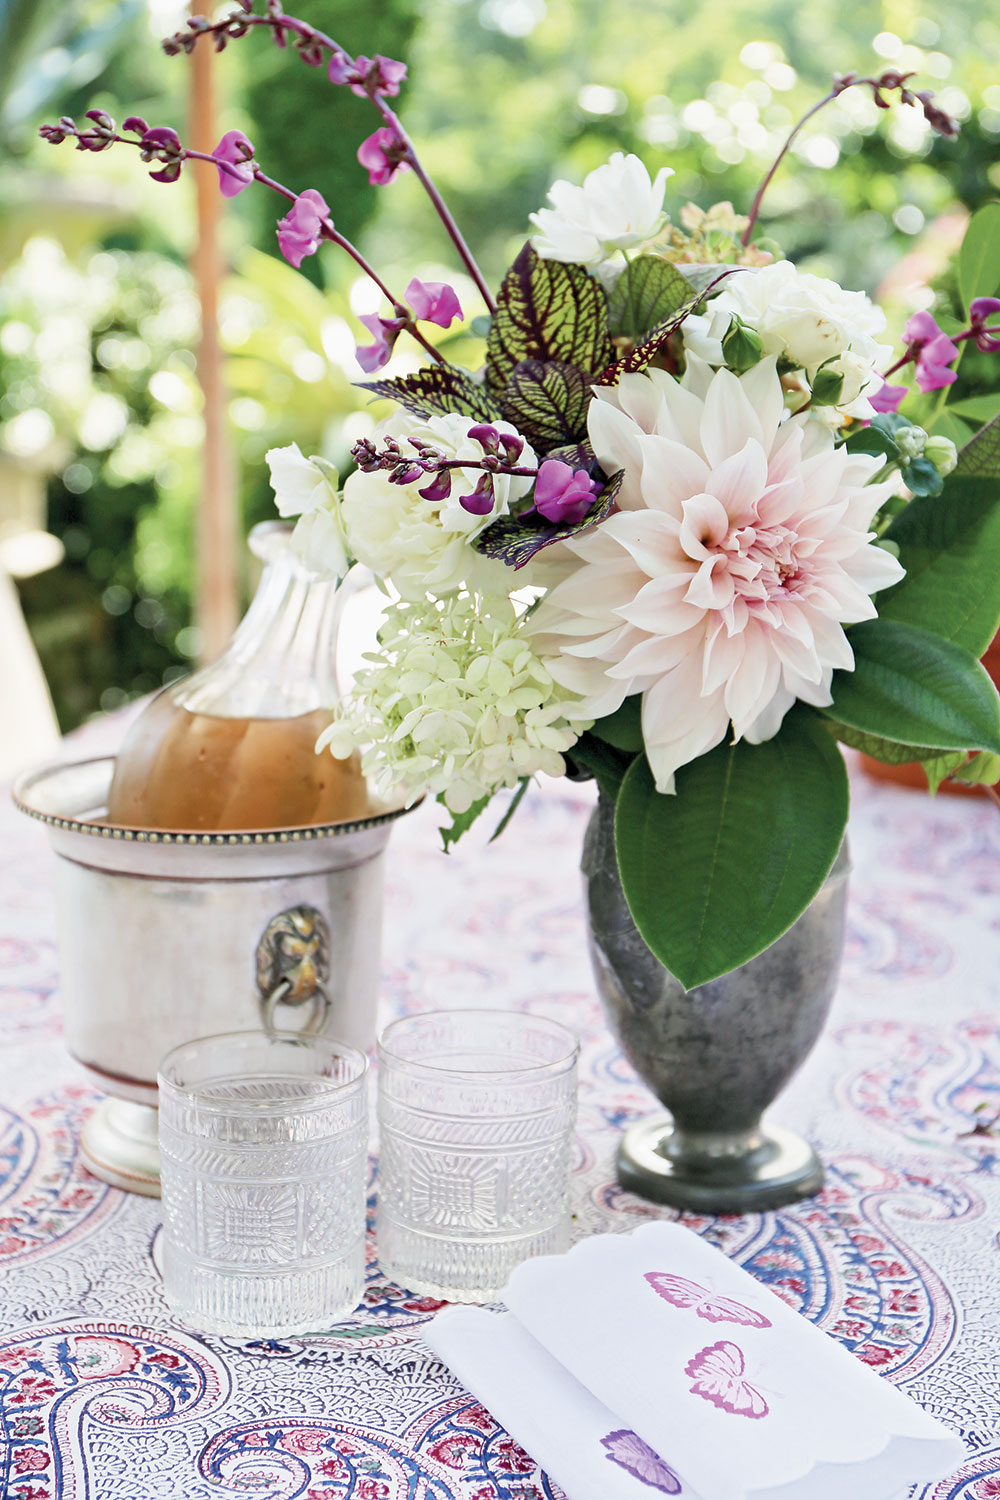 charlotte moss entertains, chilled champagne in an ice bucket, floral arrangement in a green vase, napkins, and glasses